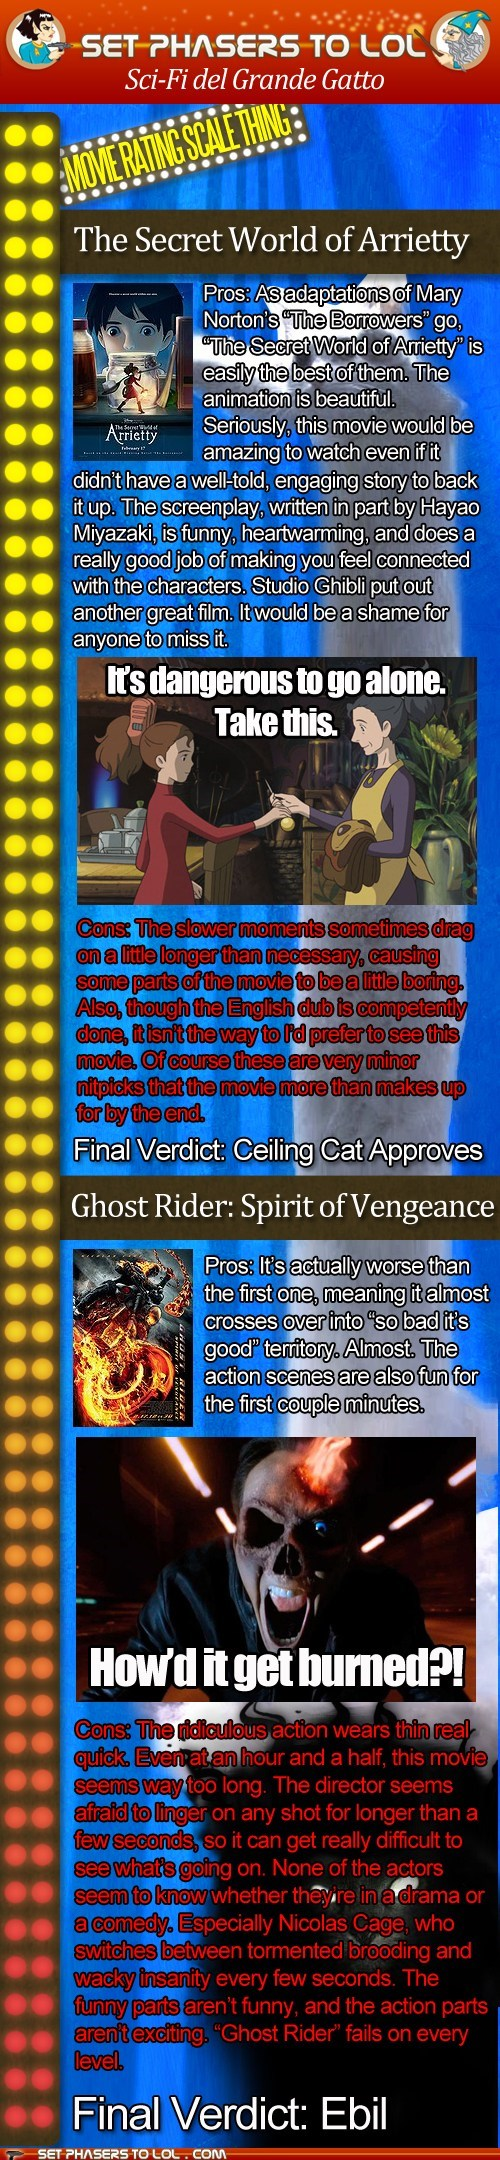 cinema ghost rider spirit of vengeance Hayao Miyazaki its-dangerous-to-go-alone-take-this movies News and Reviews nicolas cage review studio ghibli the secret world of arrietty the wicker man - 5855371264